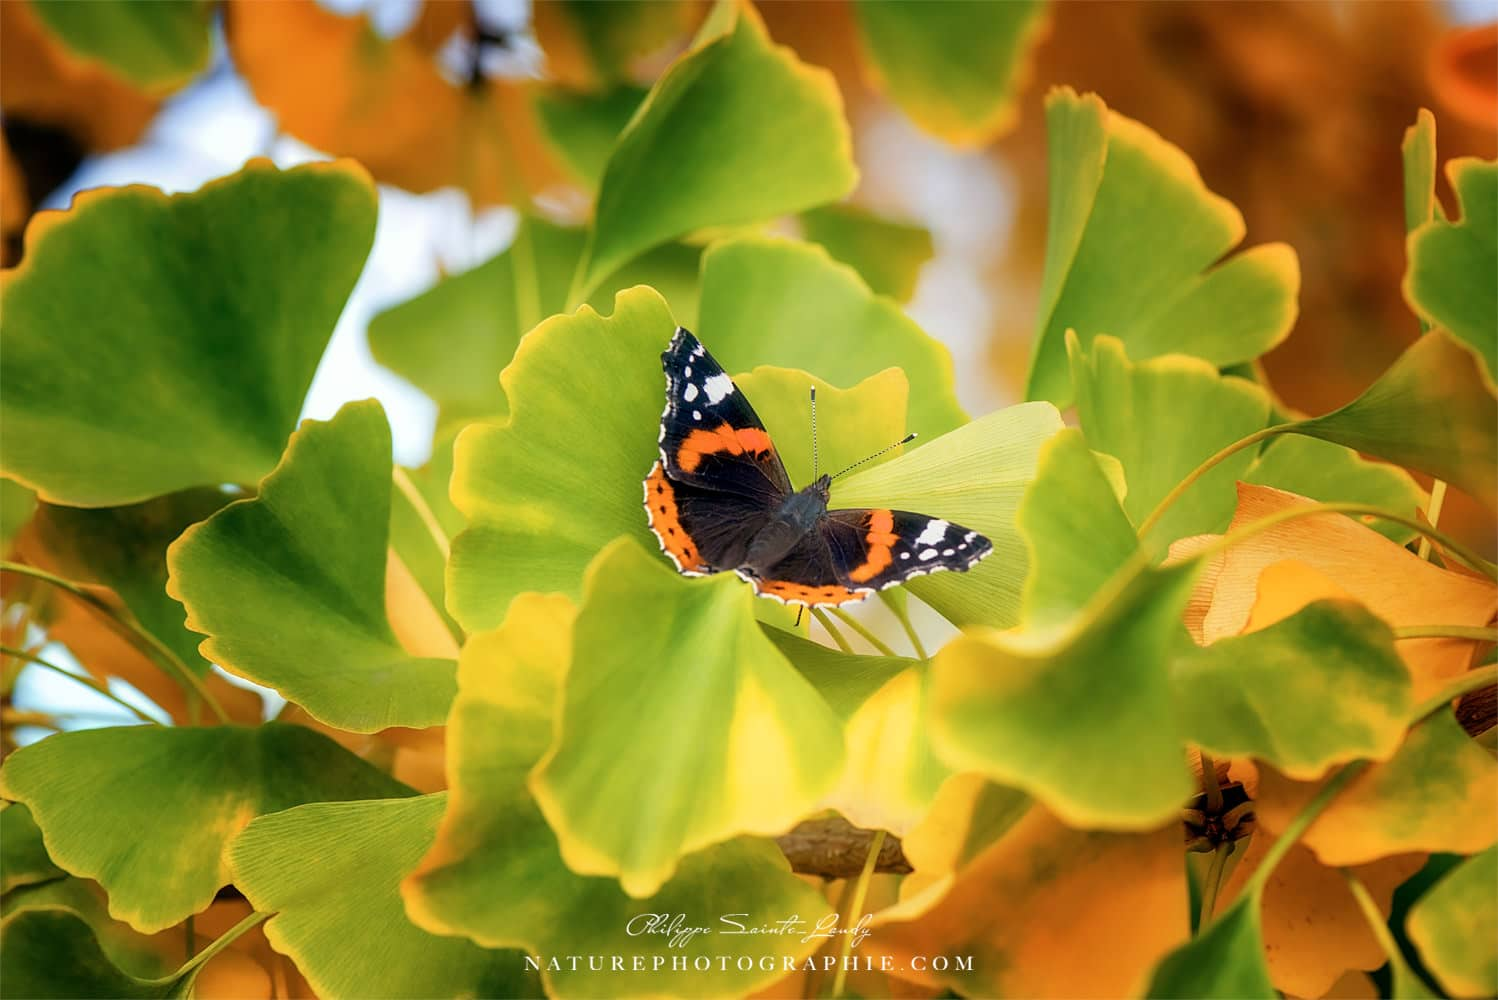 The Butterfly Who Loved Ginkgo